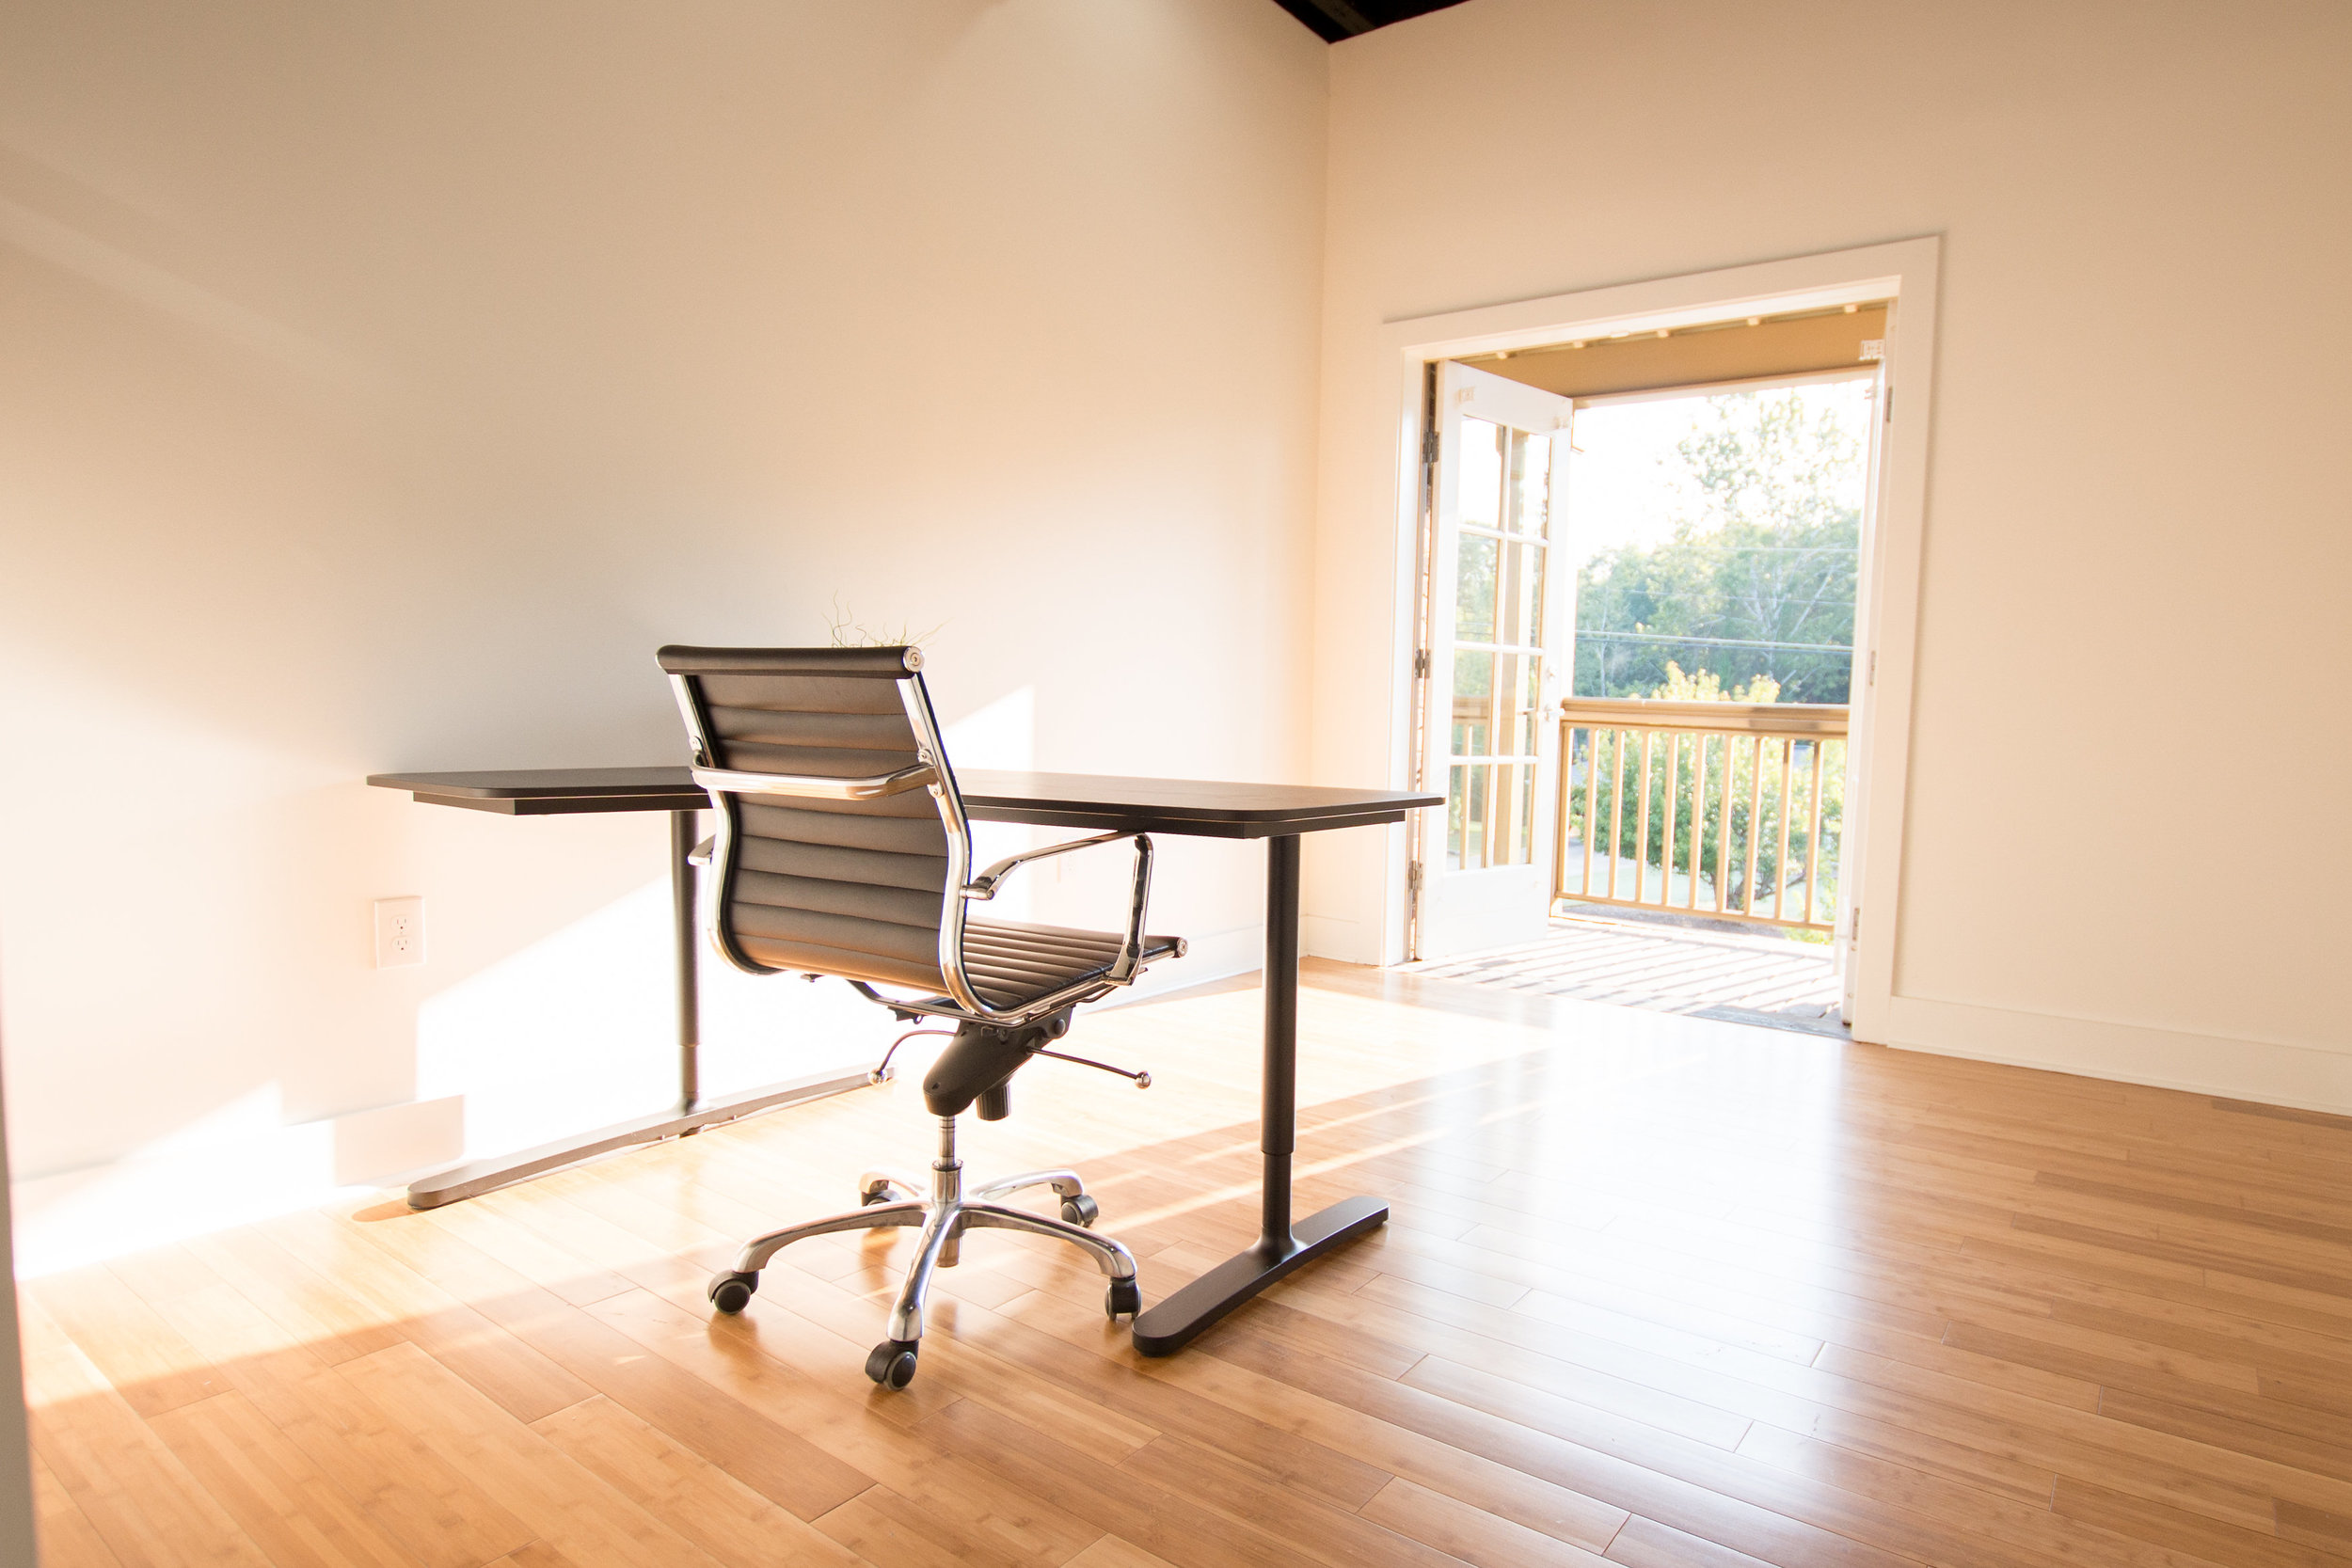 Private Office - $895 and up (mo)Furniture | WiFi | 24/7 access | mailbox services | 15hrs meeting room